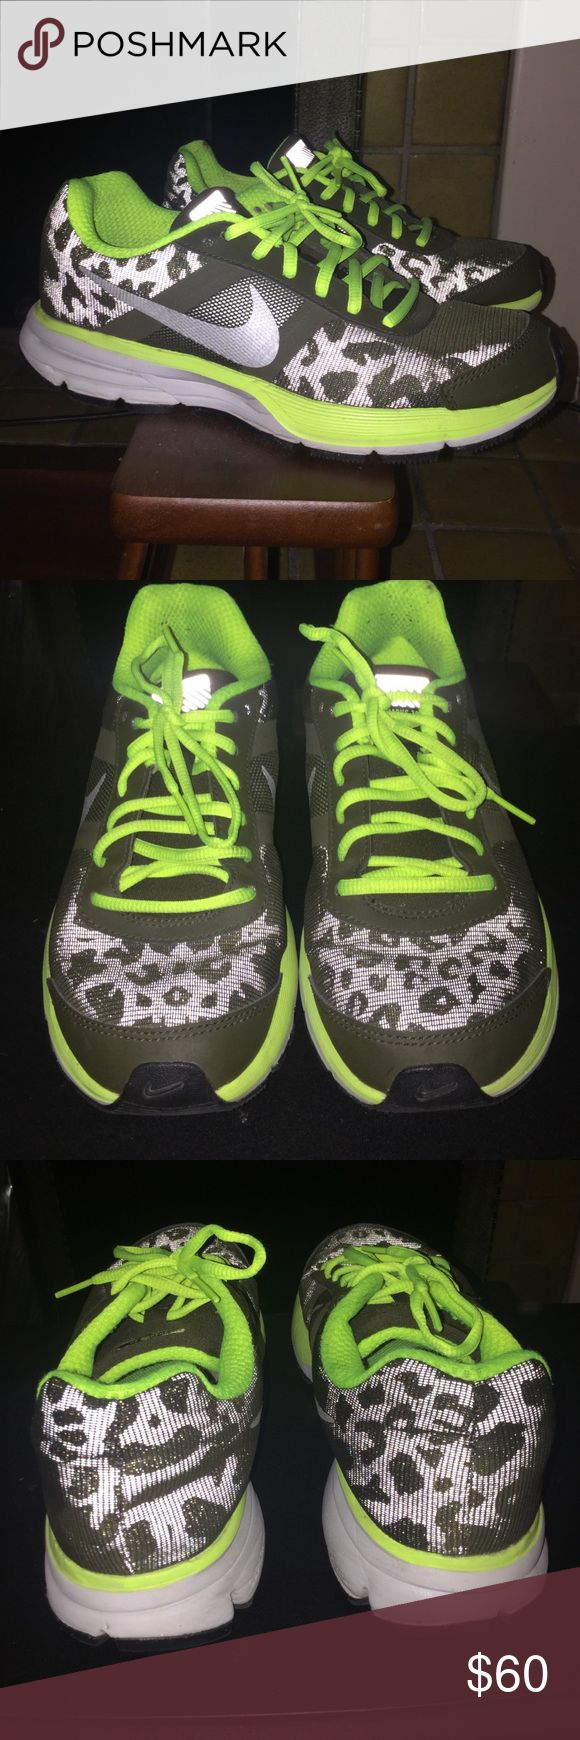 Nike leopard Pegasus 30 Nike leopard print on sneakers H20 Repel the colors are black with a neon yellow green these are great to go walking or jogging as the sun sets they have a reflective on them Note:these are a size 6 Youth fits best with a size 7 women's Nike Shoes Sneakers